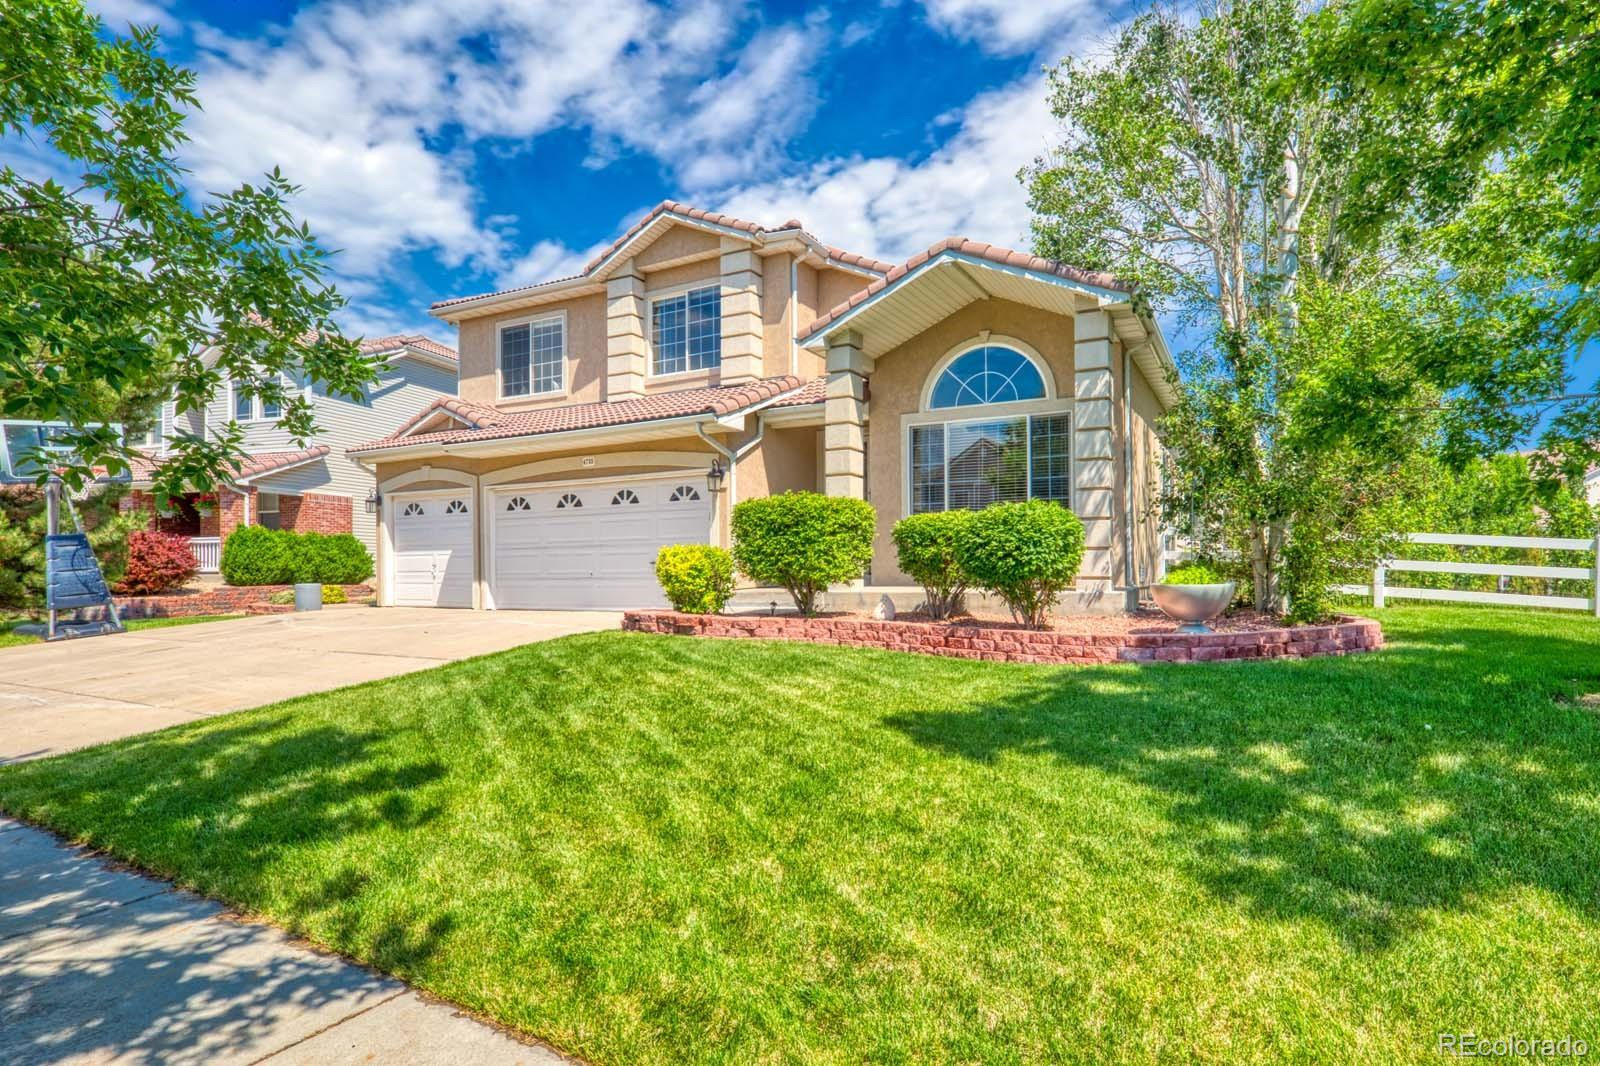 4755 W 116th Lane Property Photo - Westminster, CO real estate listing